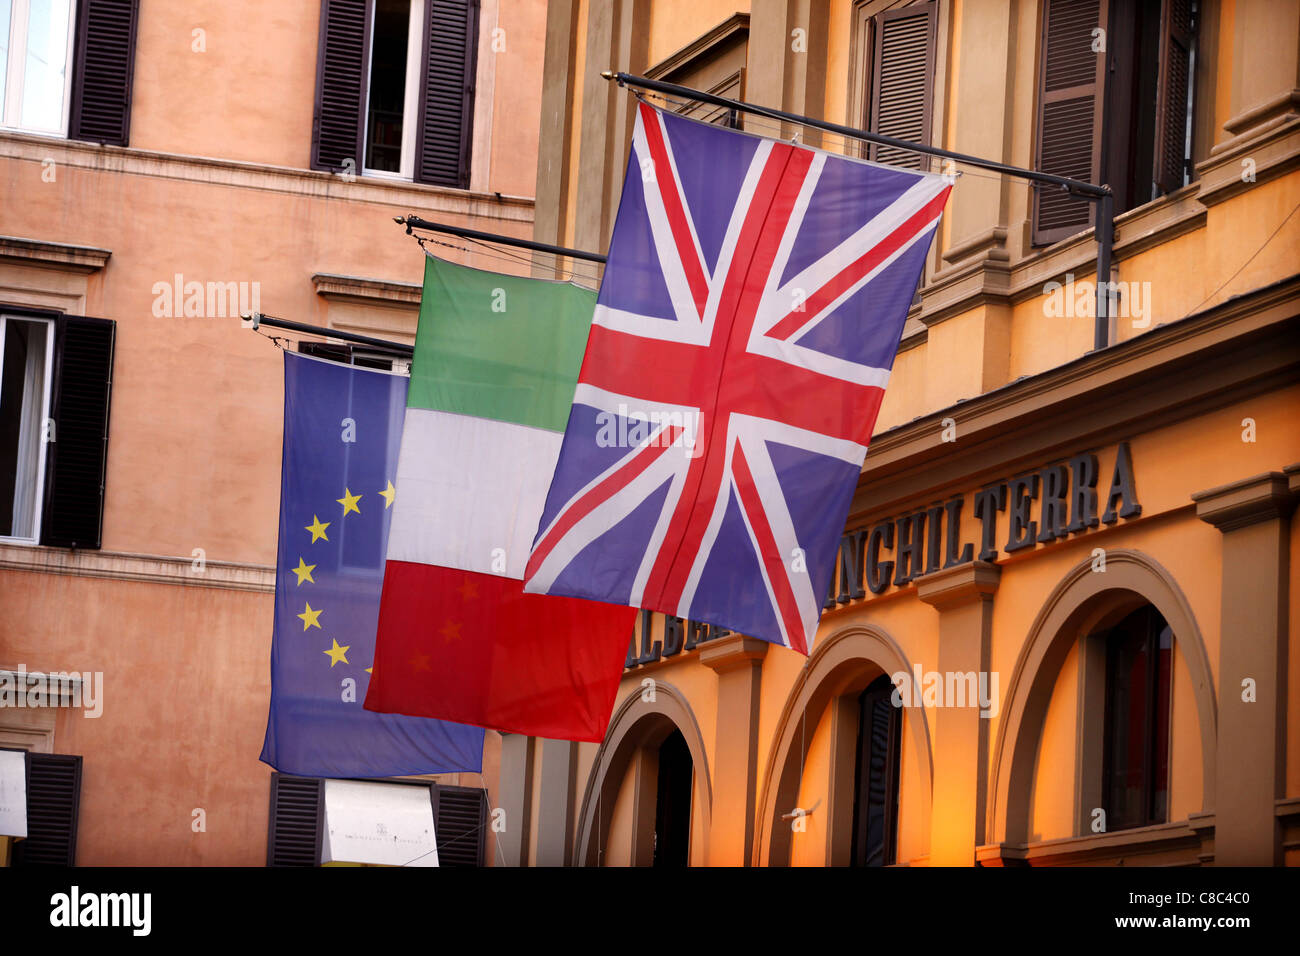 European, Italian and Union flags fly outside the Albergo Inghilterra in Rome, Italy. - Stock Image